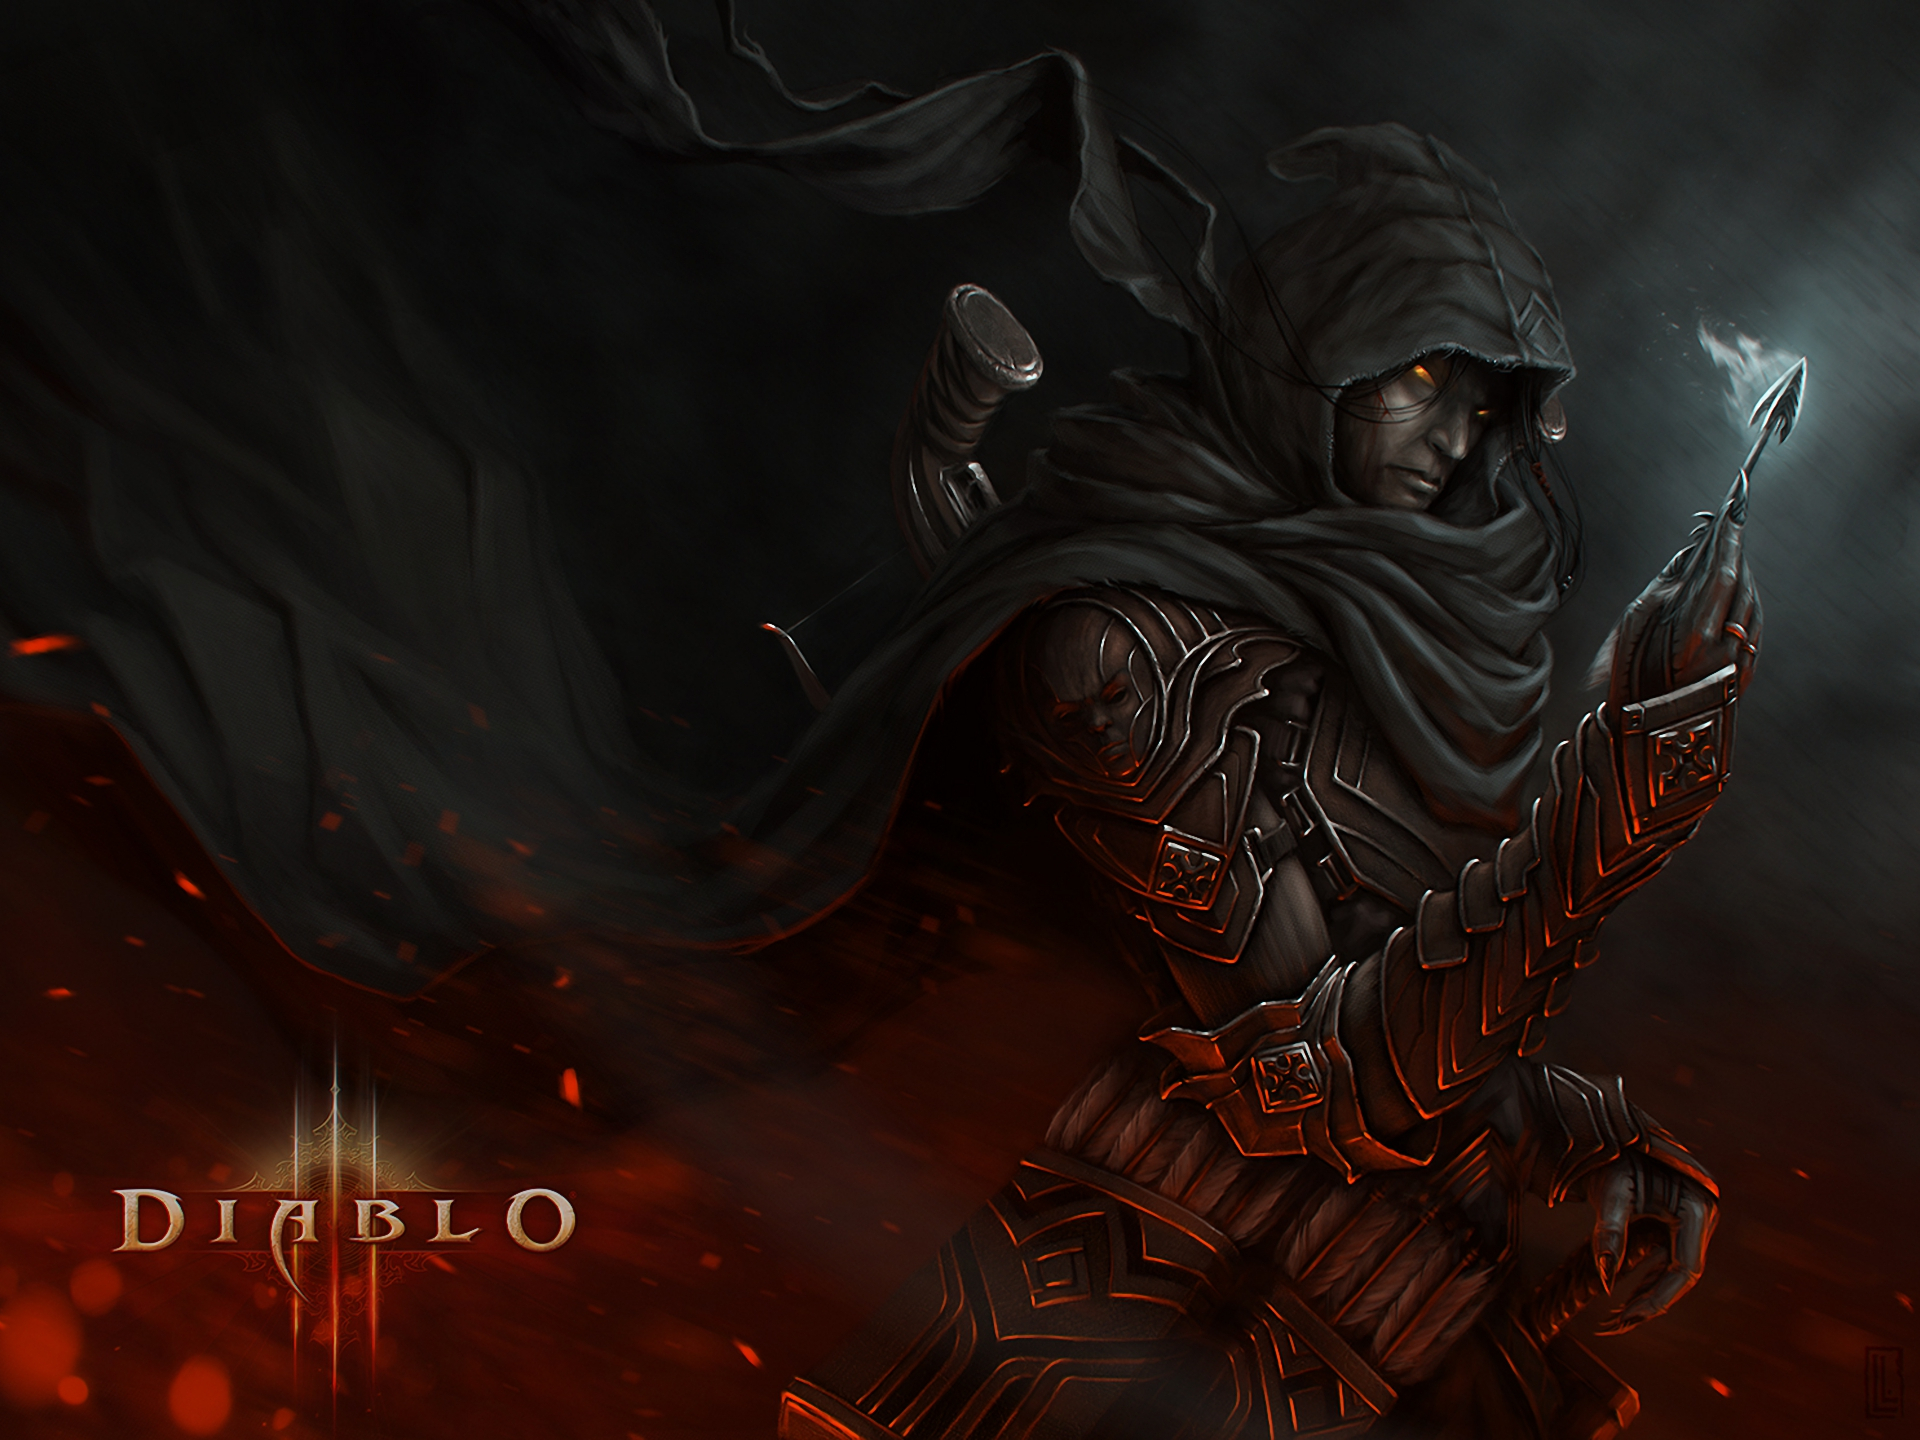 diablo wallpaper 2560x1440 - photo #33